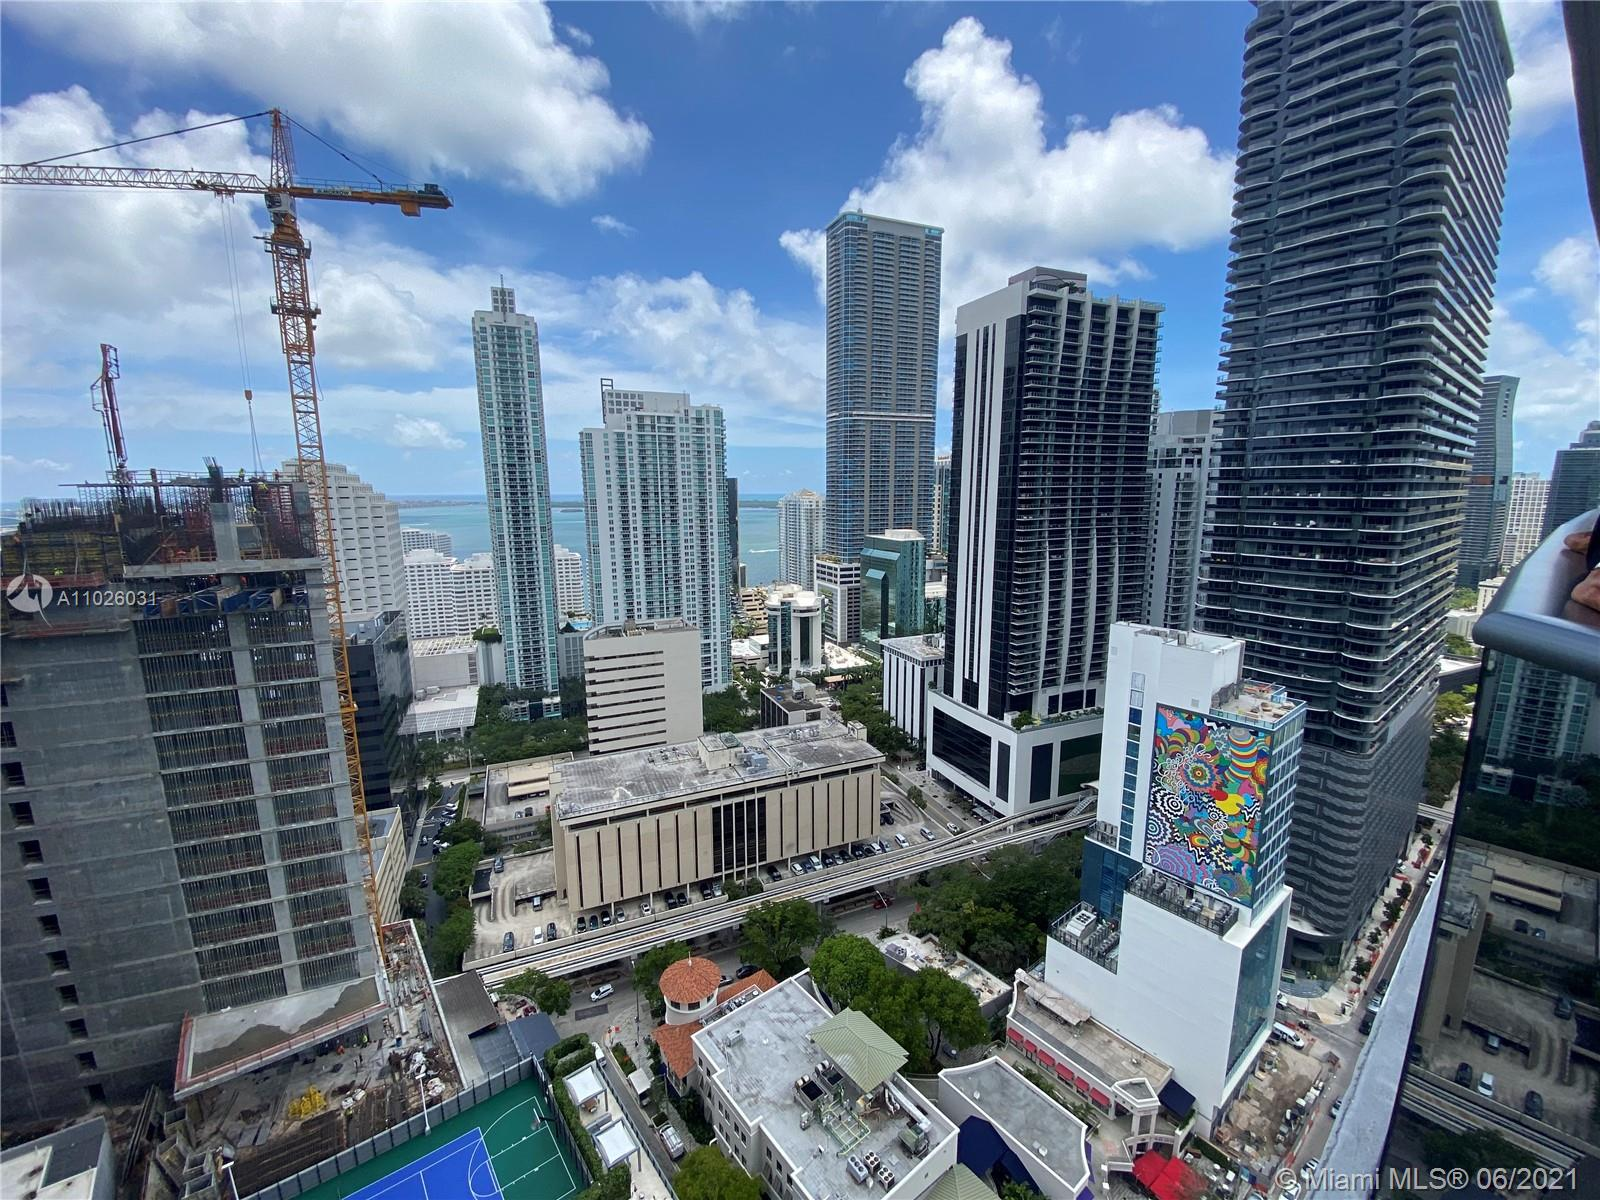 Practically new beautiful 31th floor unit with amazing ocean and city views, large bedroom + den, 2 full bathrooms, terrace, top of the line kitchen appliances, breathtaking amenities such as 3 pools (one at the 50th floor roof with 360 ocean and city views of Miami), gym, 2 clubrooms, movie room, kids room, spa room, conference room and putting green! Best location in Brickell across  from Publix and Brickell City Center! Walk to schools banks restaurants coffee shops! Great for investors: unit rents for aprox $2850 monthly